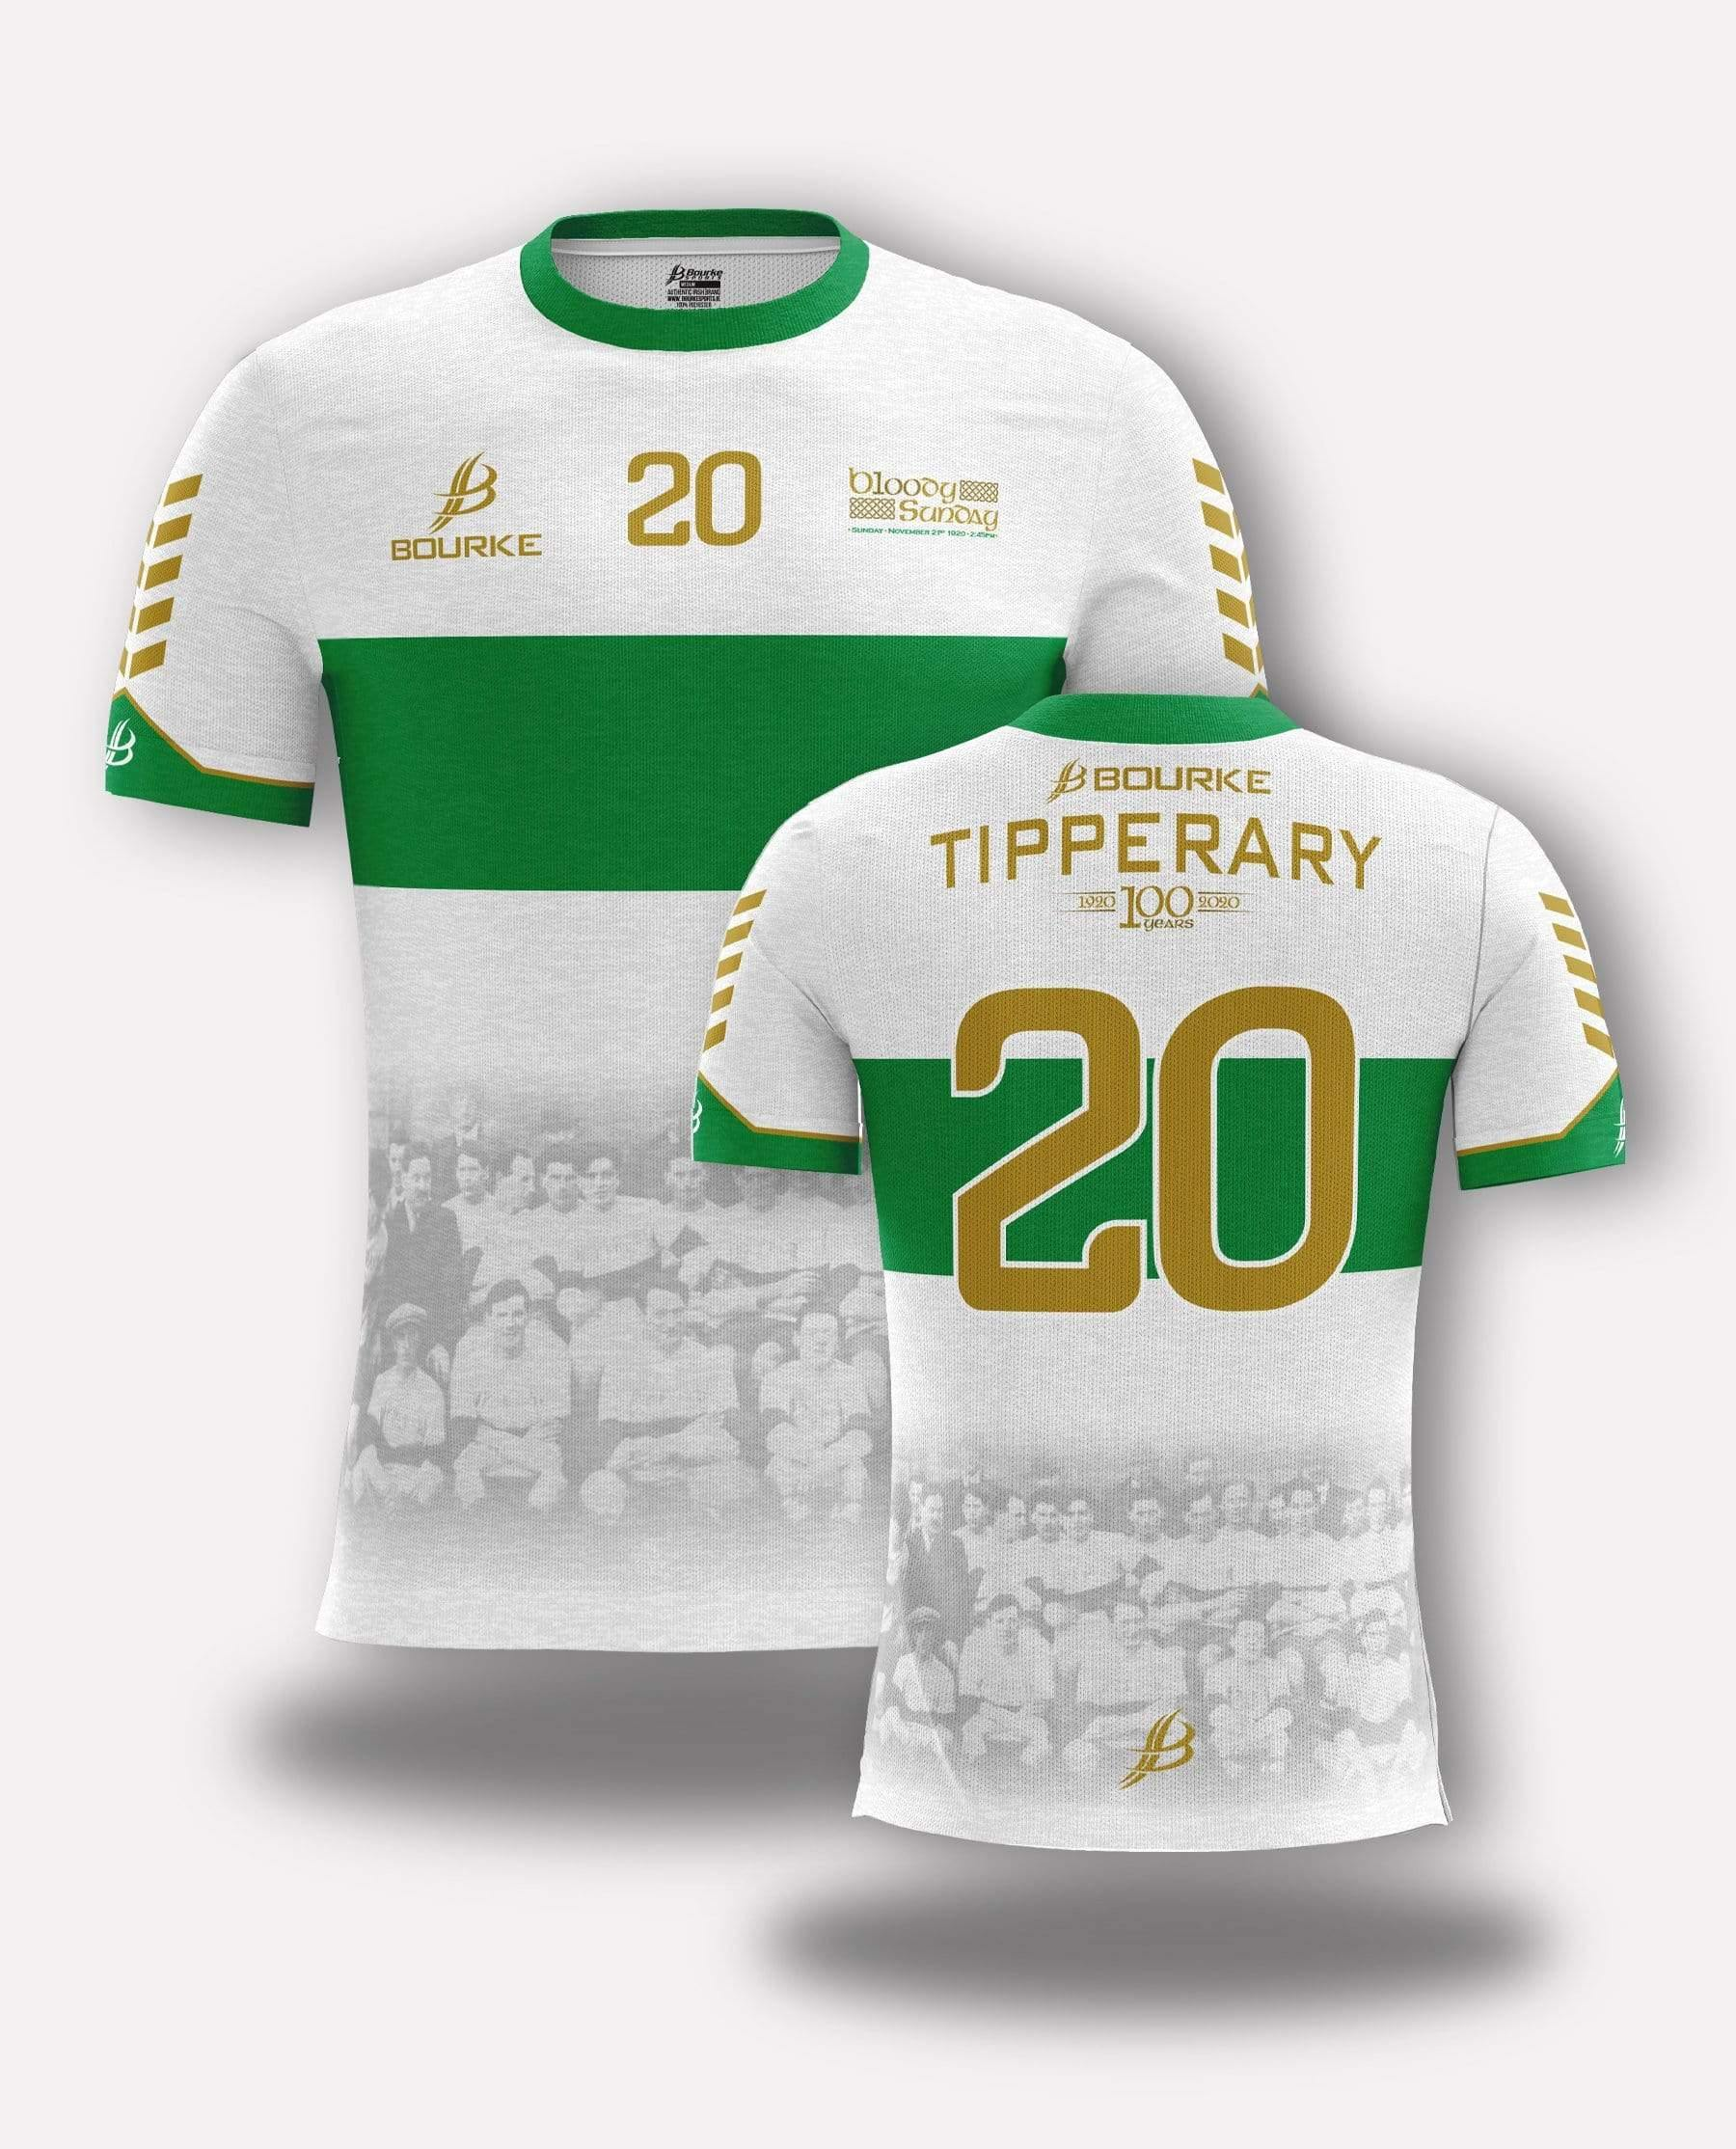 Tipperary 1920 Jersey - Bourke Sports Limited